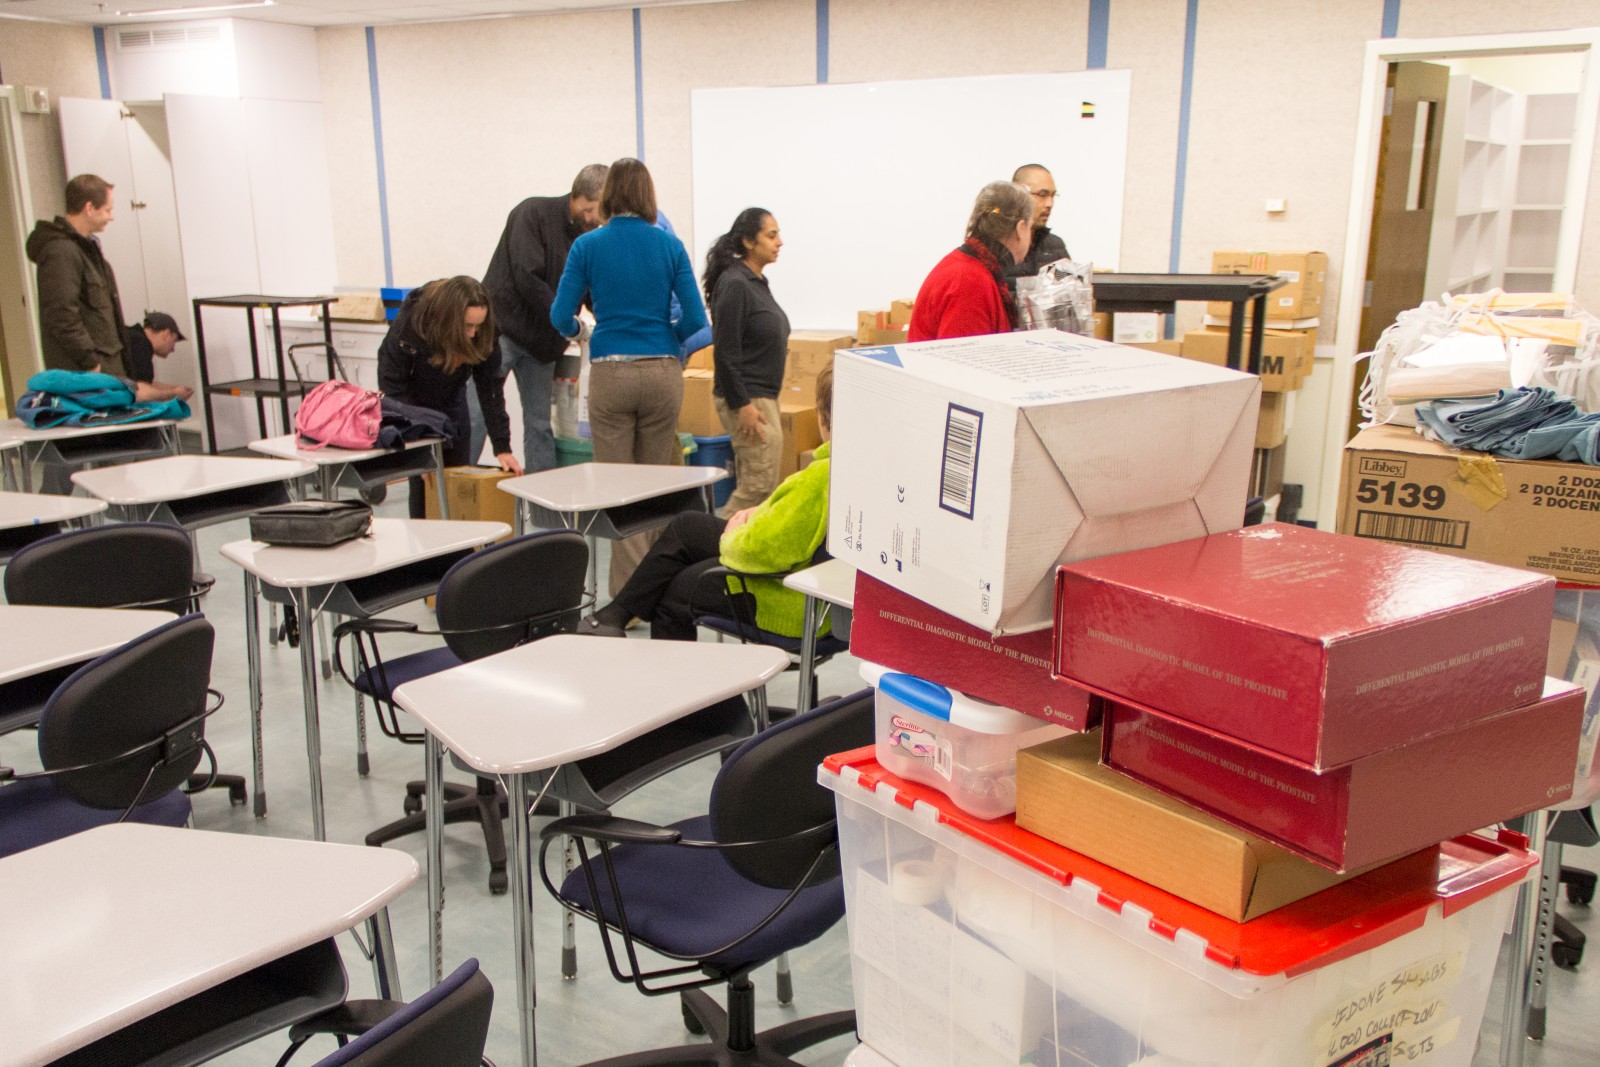 The Entire MEDEX Seattle Office Turned Out To Assist With The Move To Room  T483. Boxes Of Didactic Supplies That Had Been In Storage Since August Were  ...